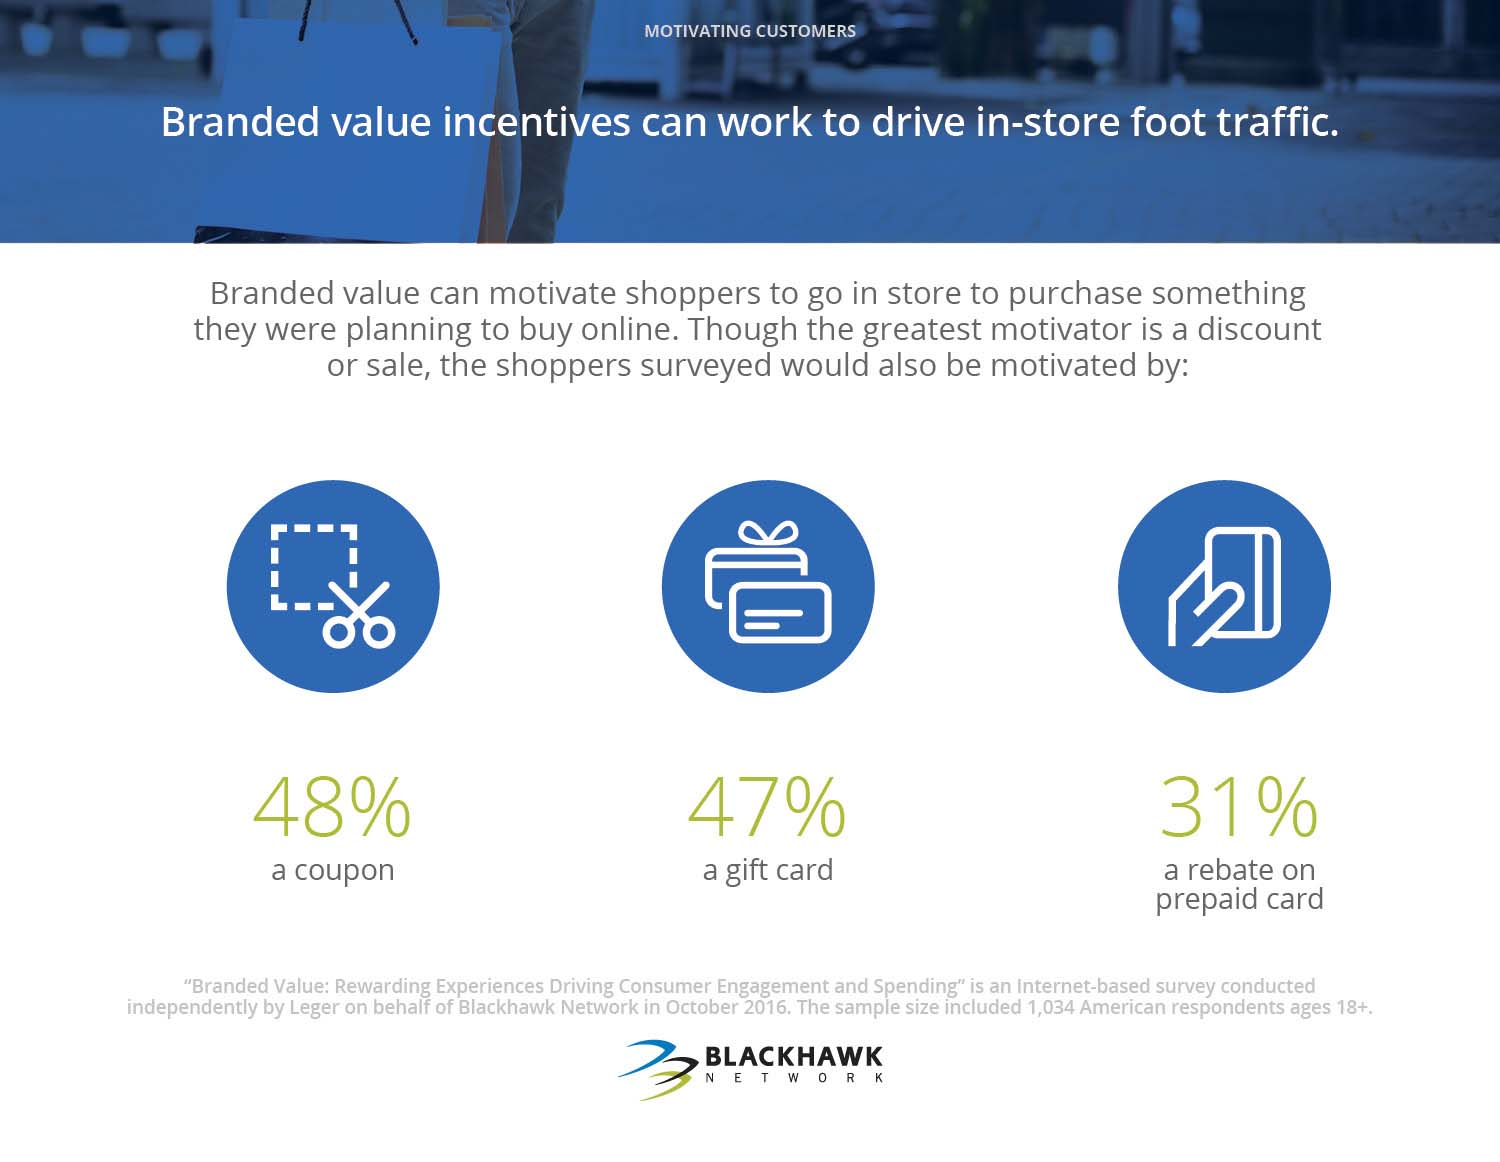 Branded value can motivate shoppers to go in store to purchase something that they were planning to buy online.